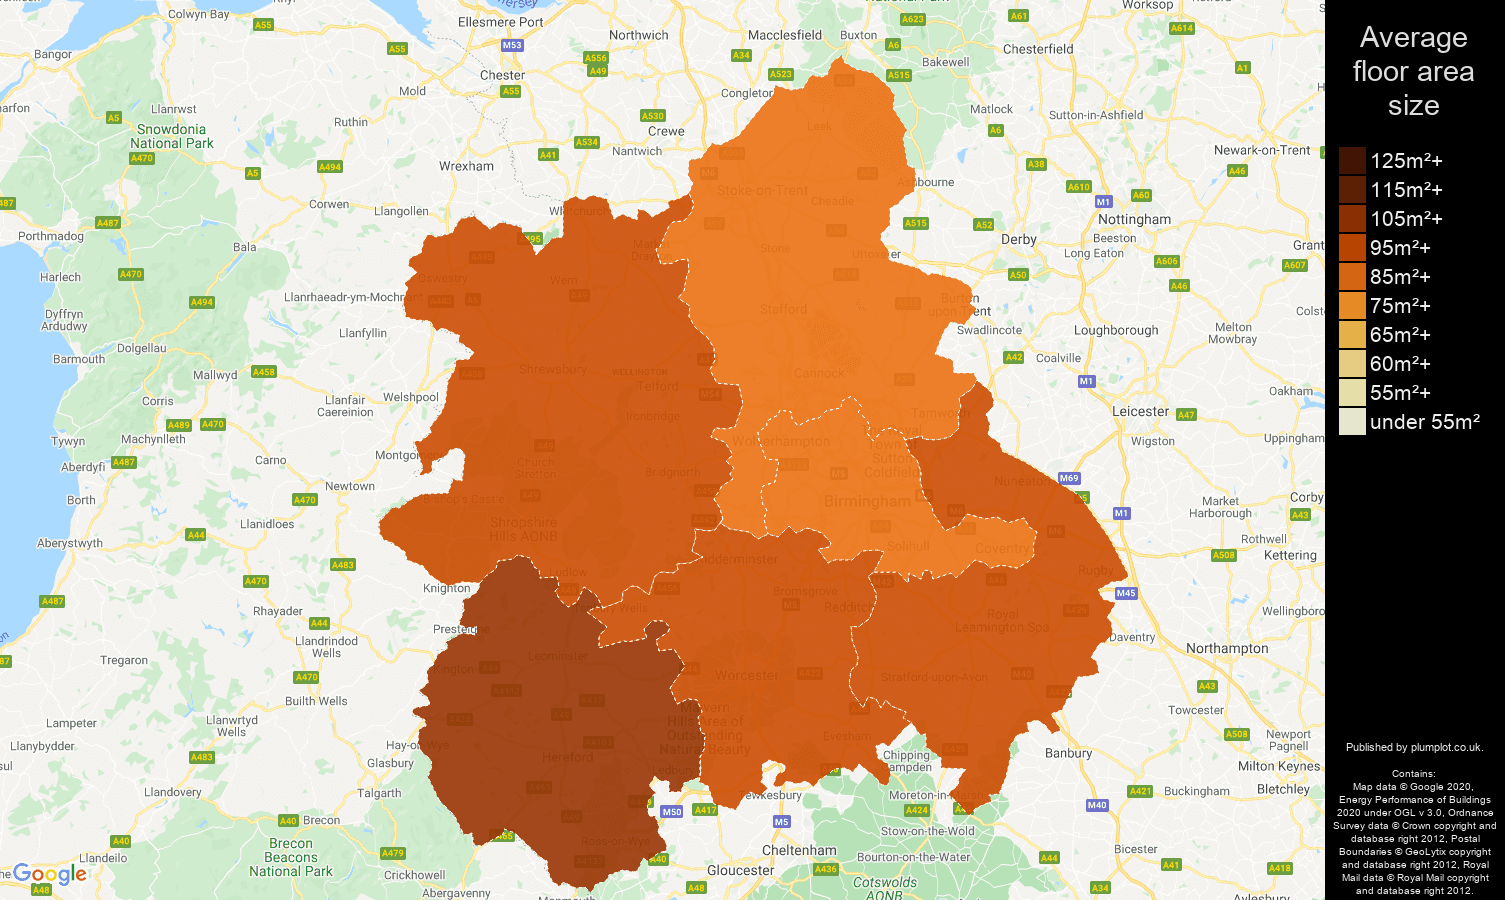 West Midlands map of average floor area size of houses